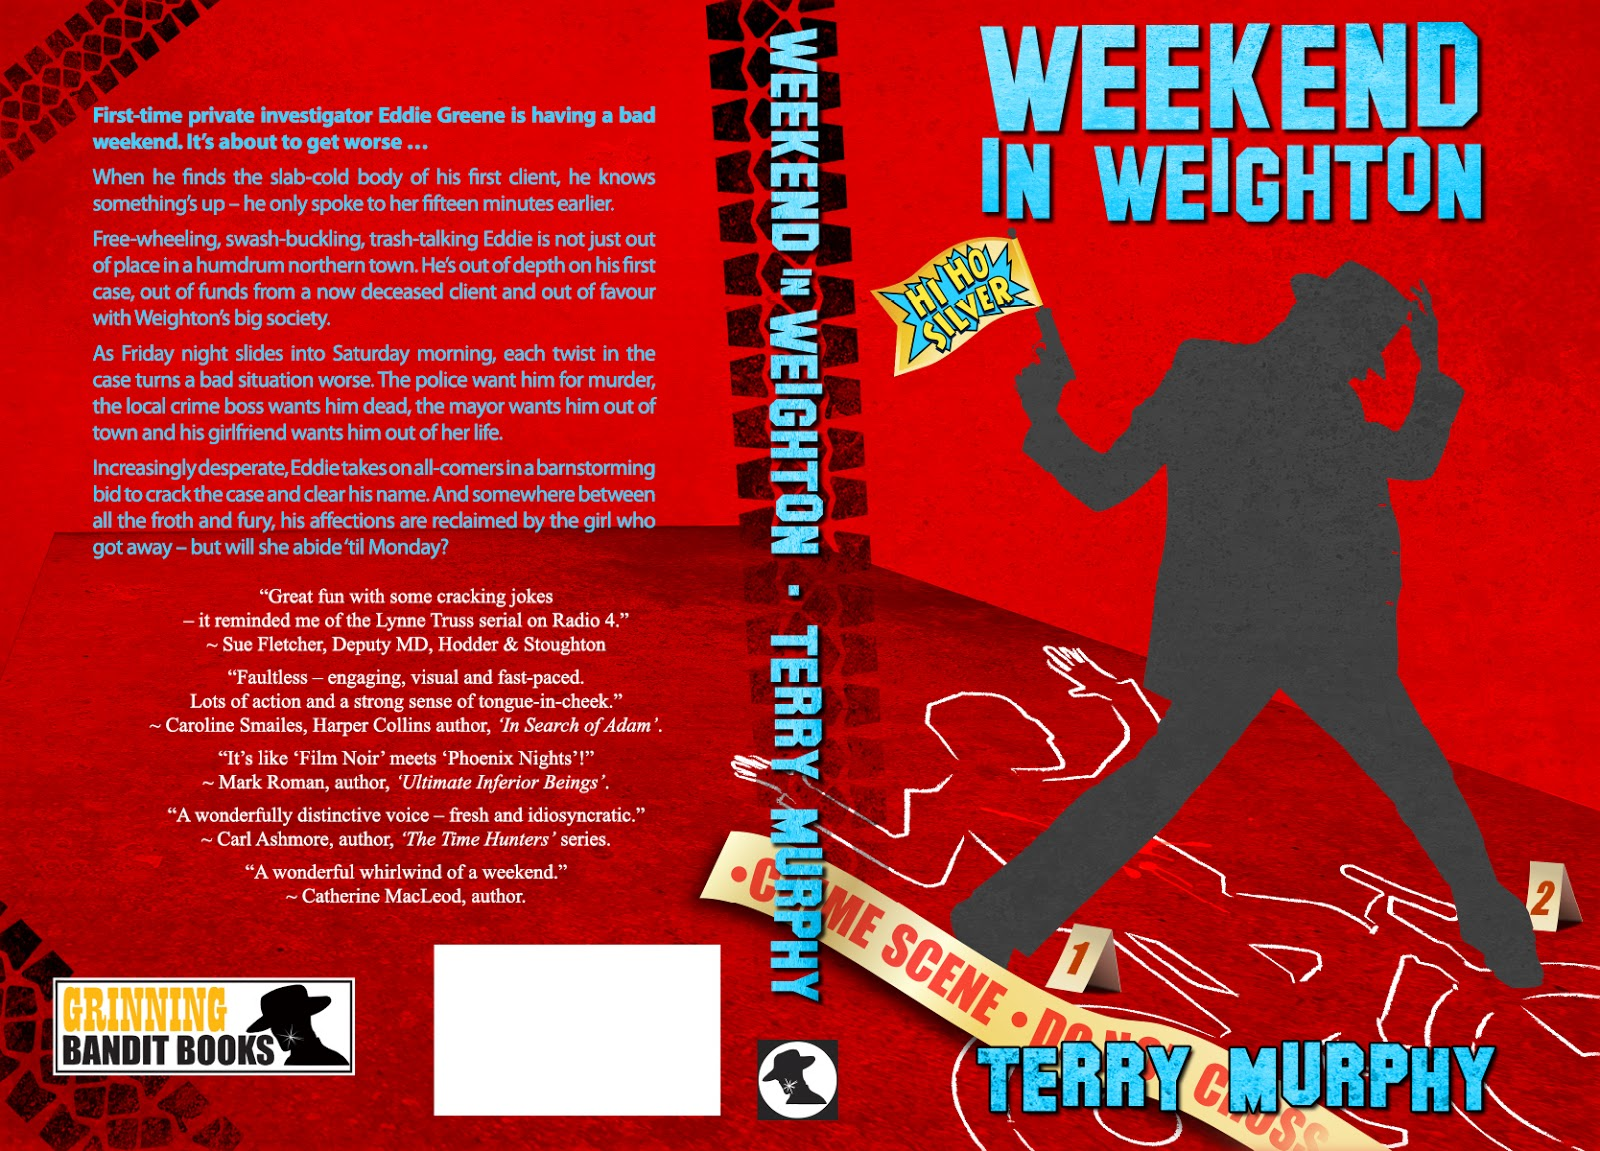 """Weekend in Weighton"" author: Terry Murphy, cover designer: Kura Carpenter"